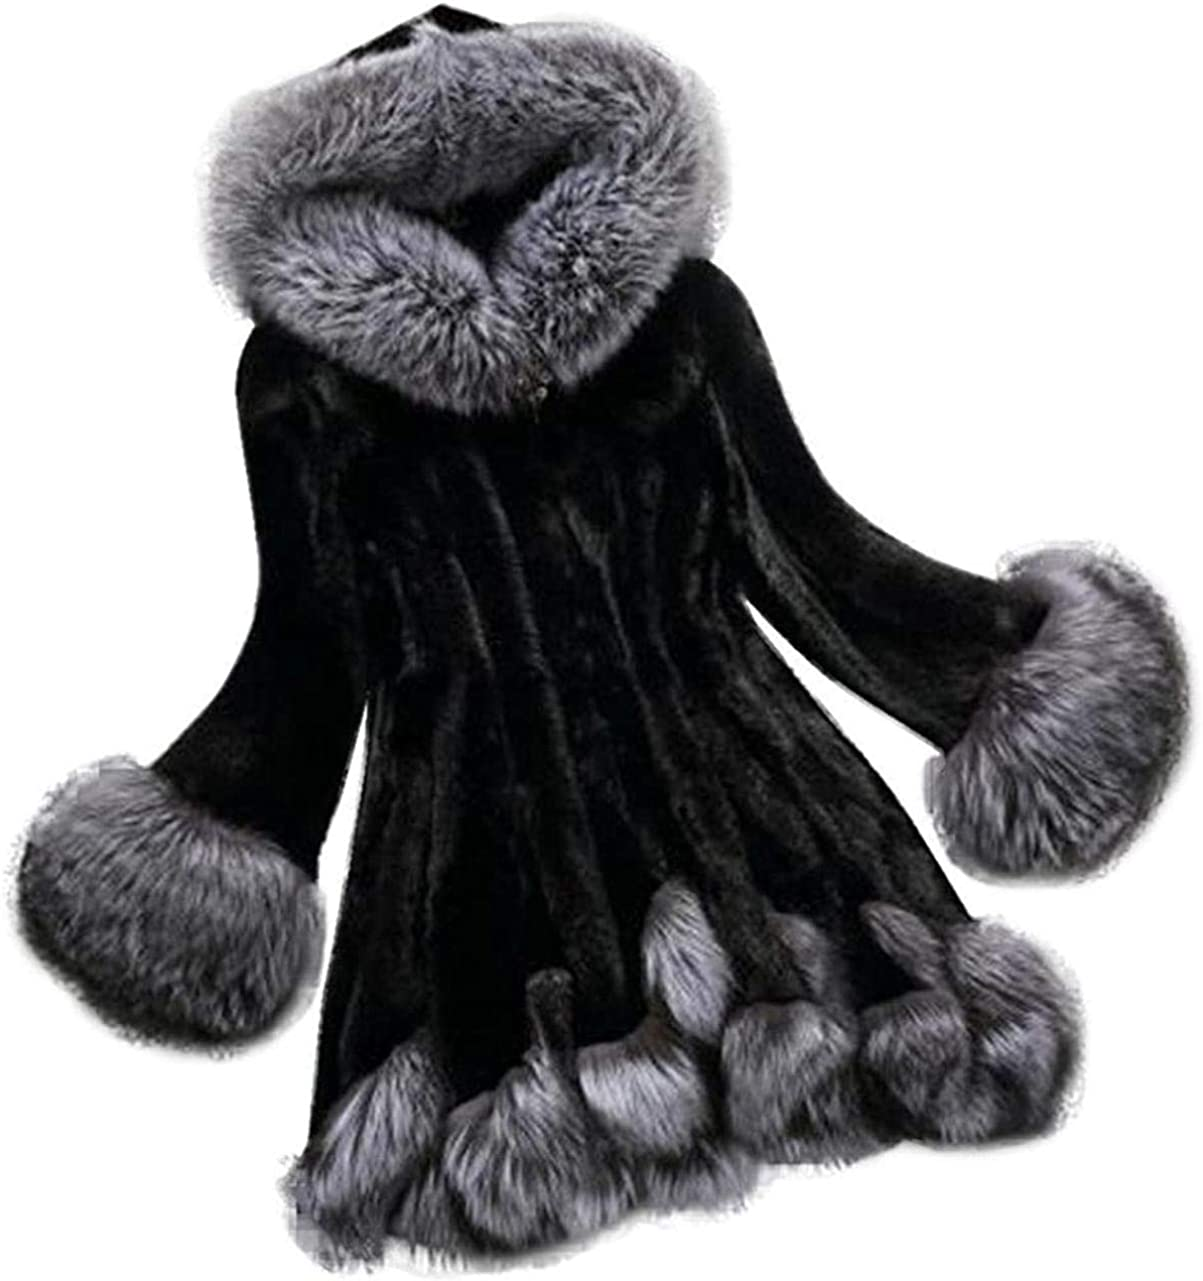 Plus Size Faux Fur Coat for Women Winter Warm Fur Lining Parka Soft Comfortable Hooded Party Jackets Outwear -